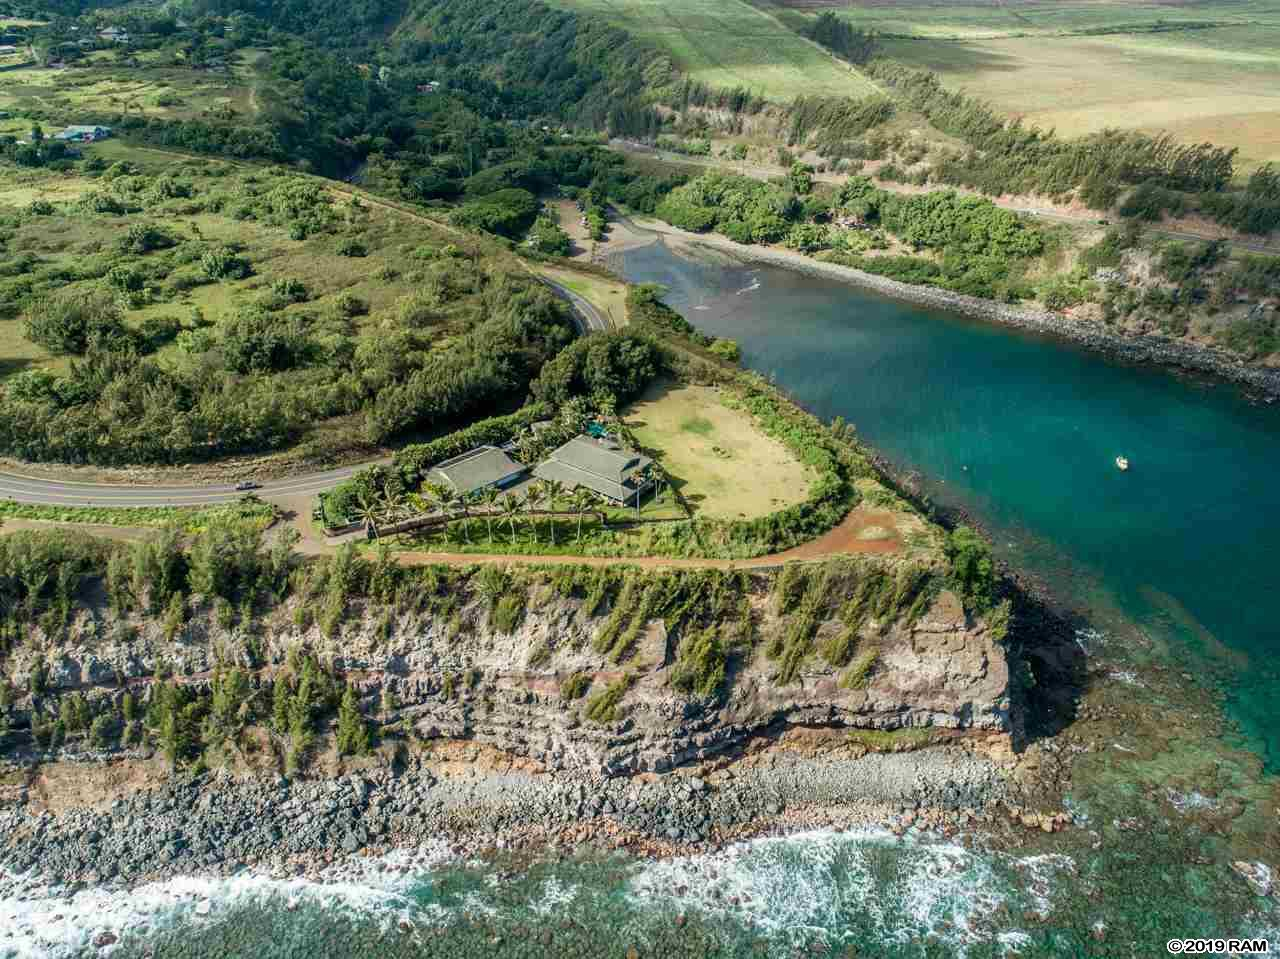 2175 Hana Hwy in Maliko Cliffs